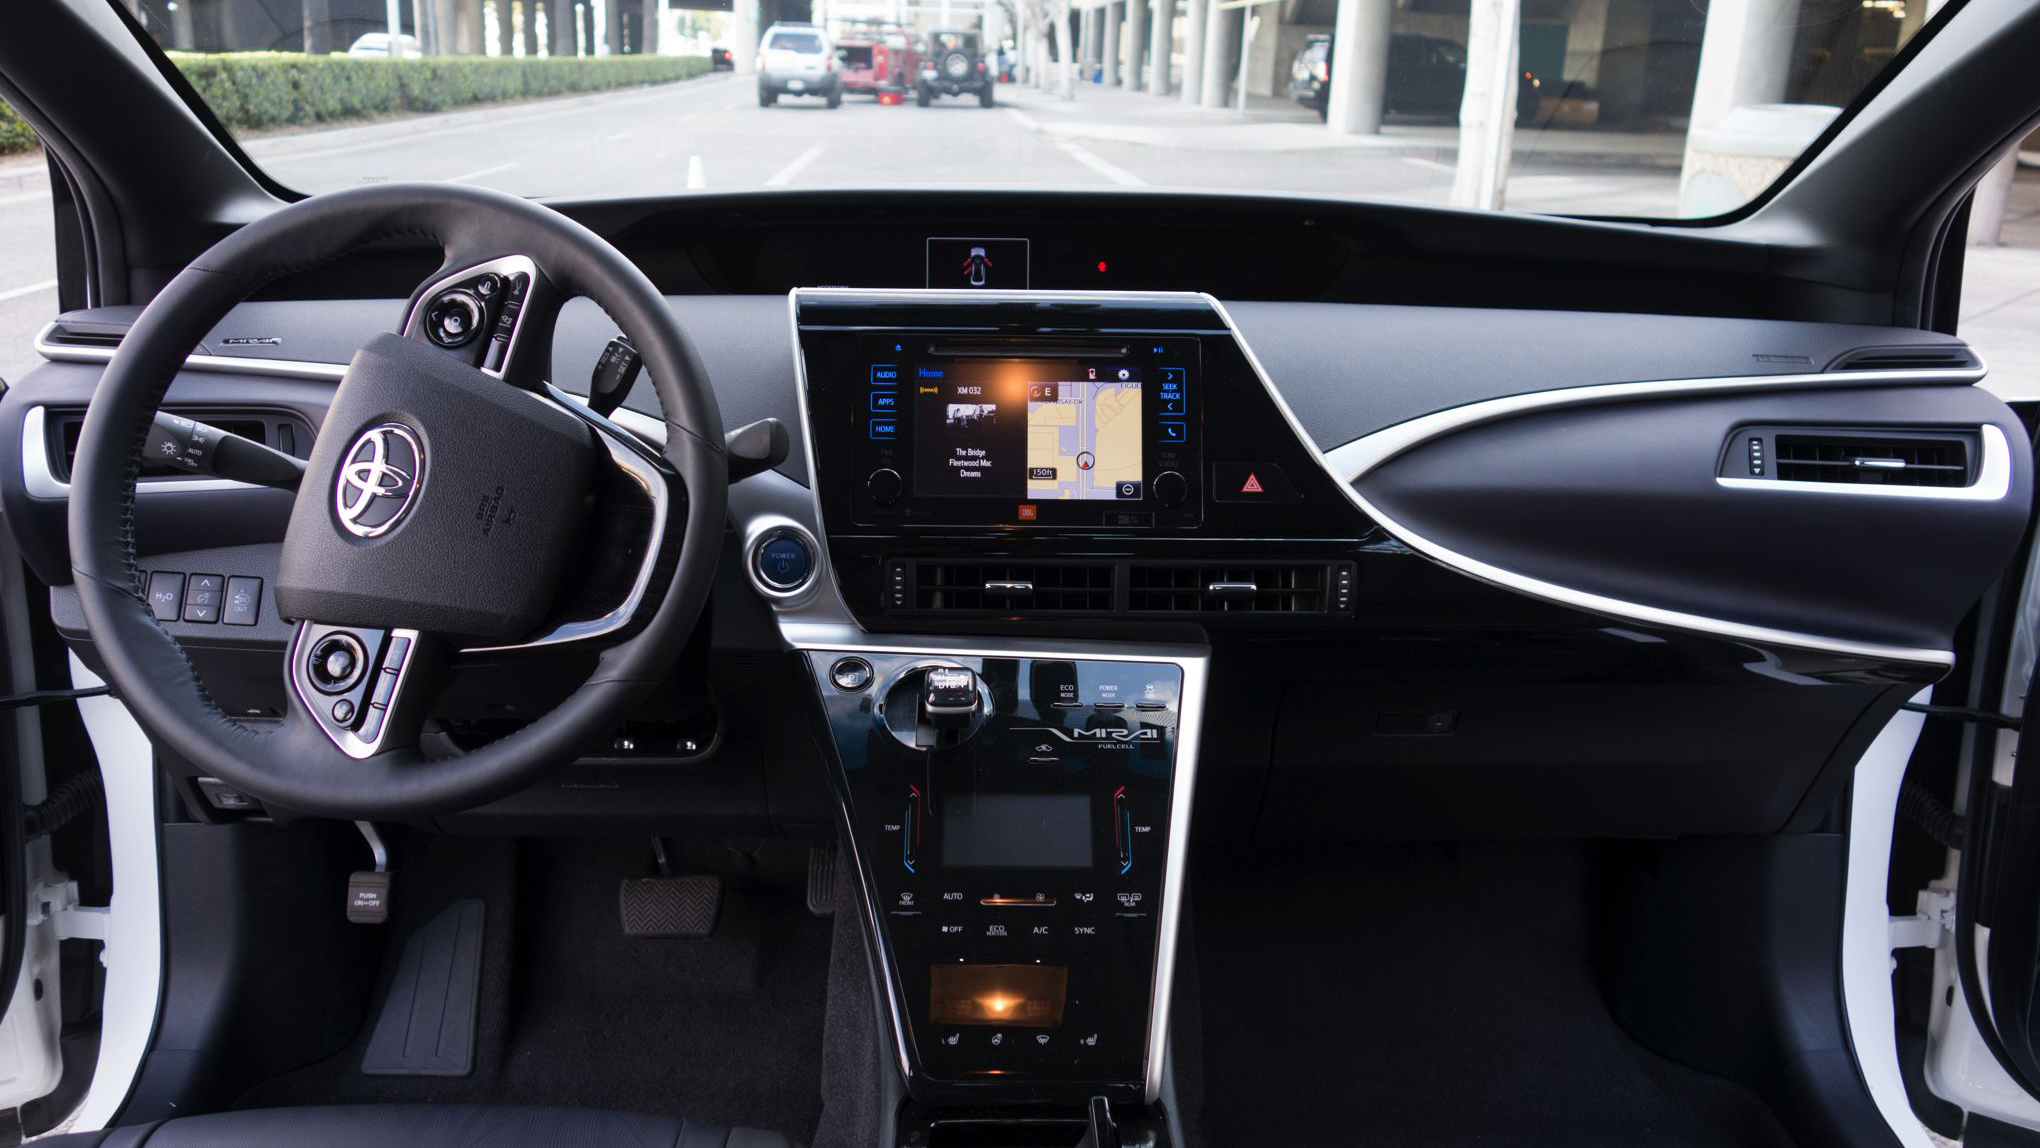 the drive living s way mirai ces toyotas toyota hydrogen powered revolutionize may laas